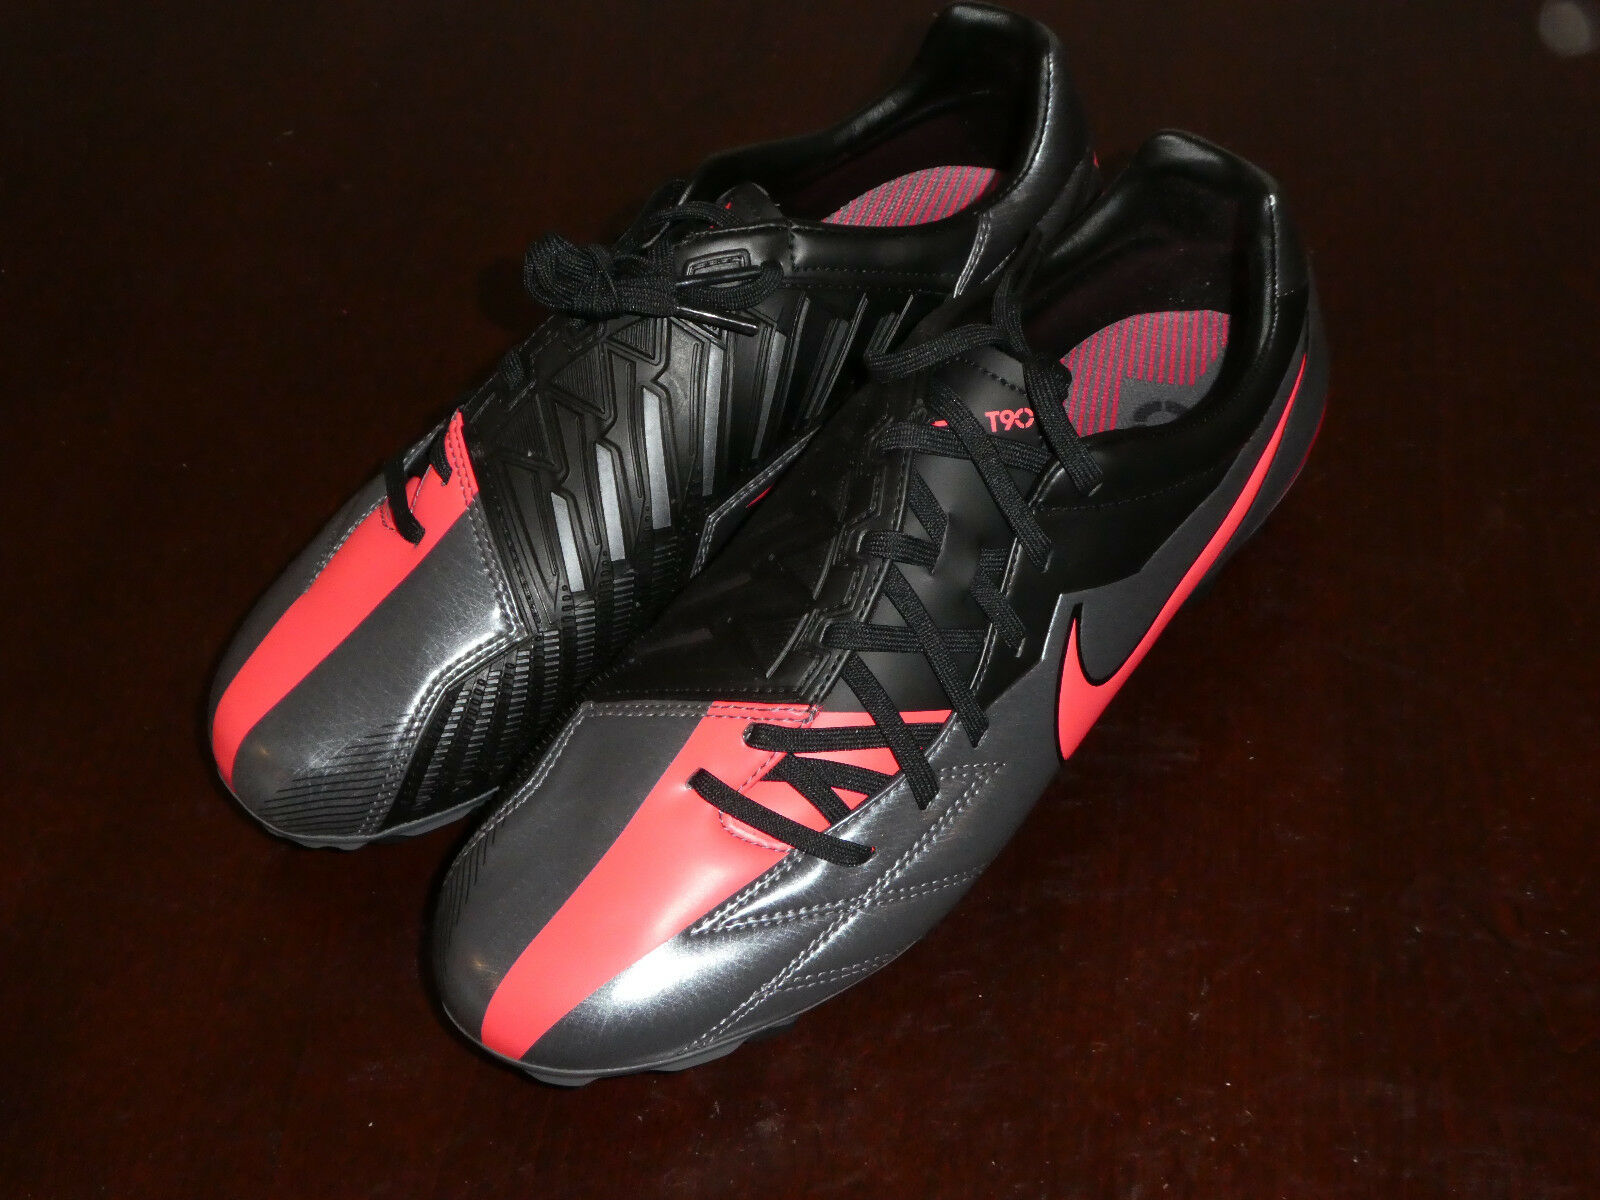 Nike T90 Strike IV FG Soccer Cleats new shoes 472562 060 grey